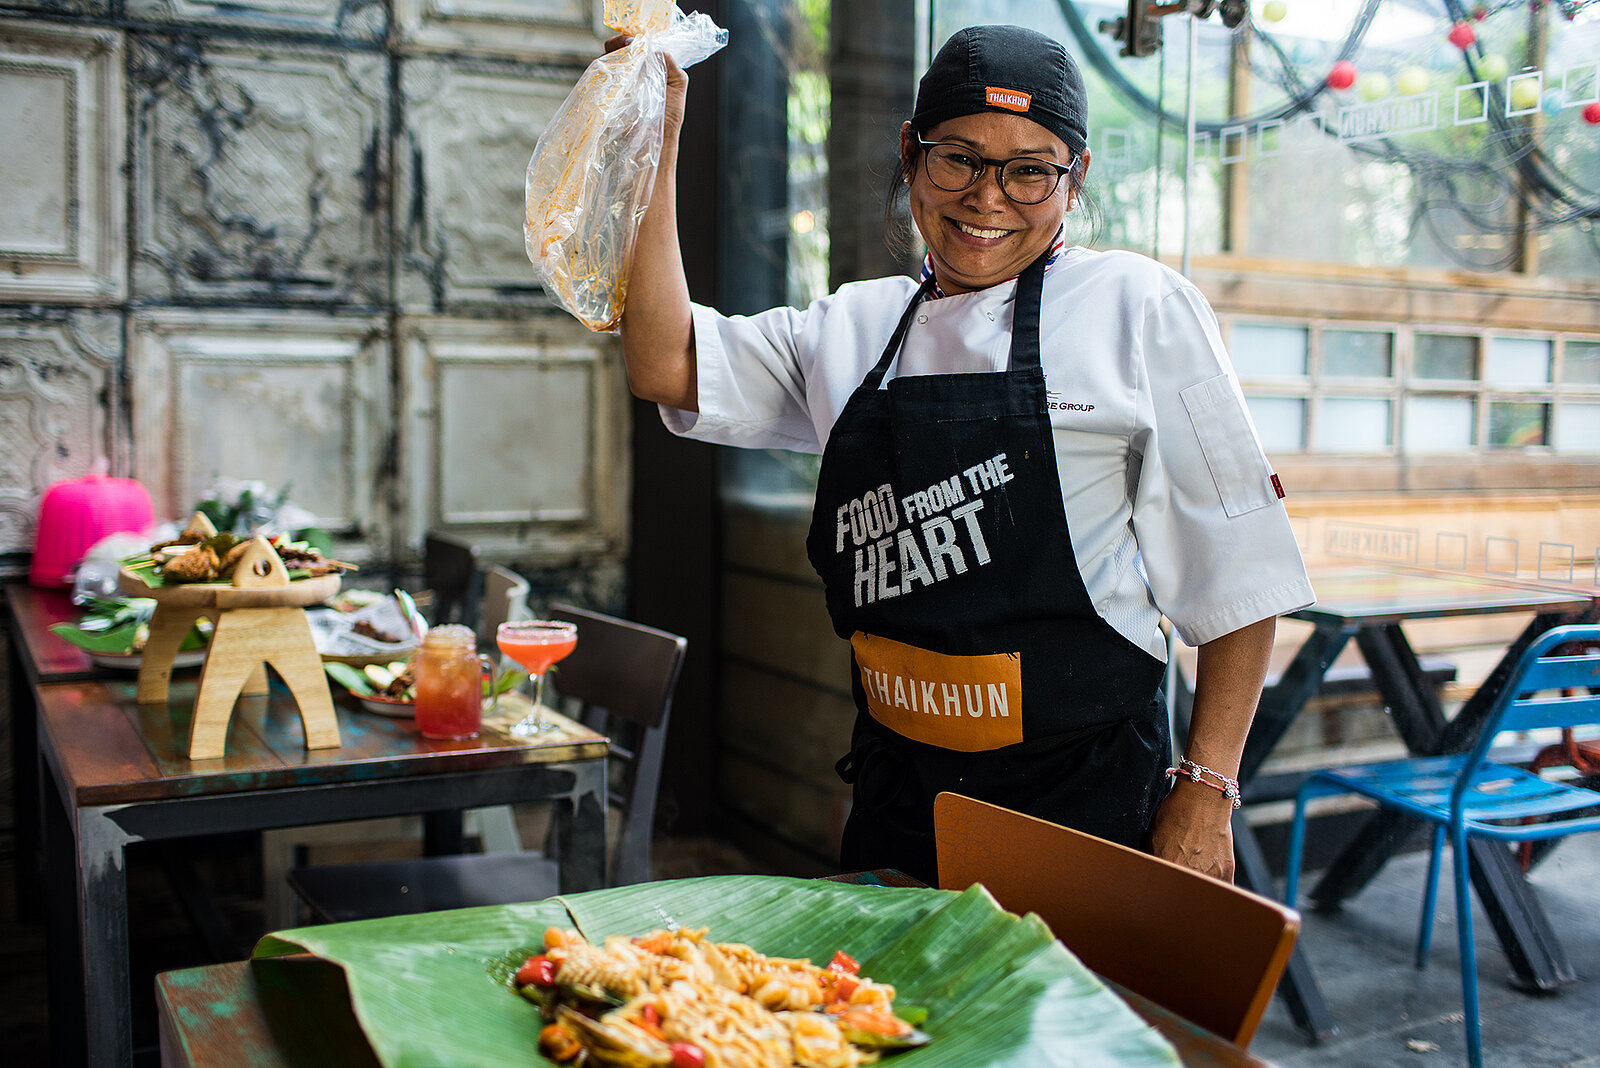 Thaikhun thai street food Kim chef and owner